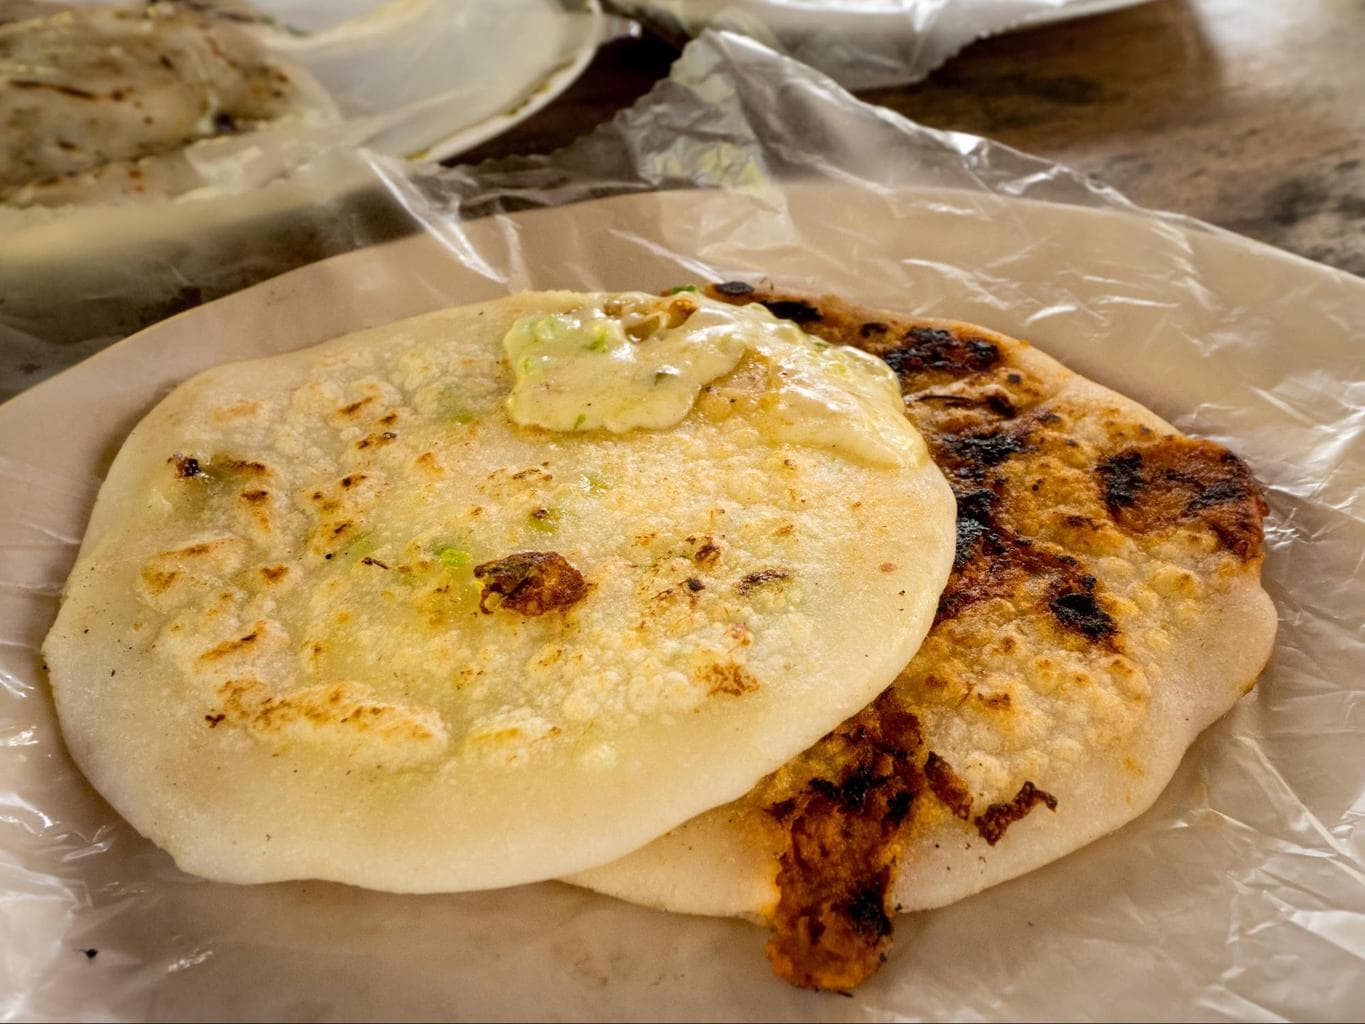 Pupusa in El Salvador